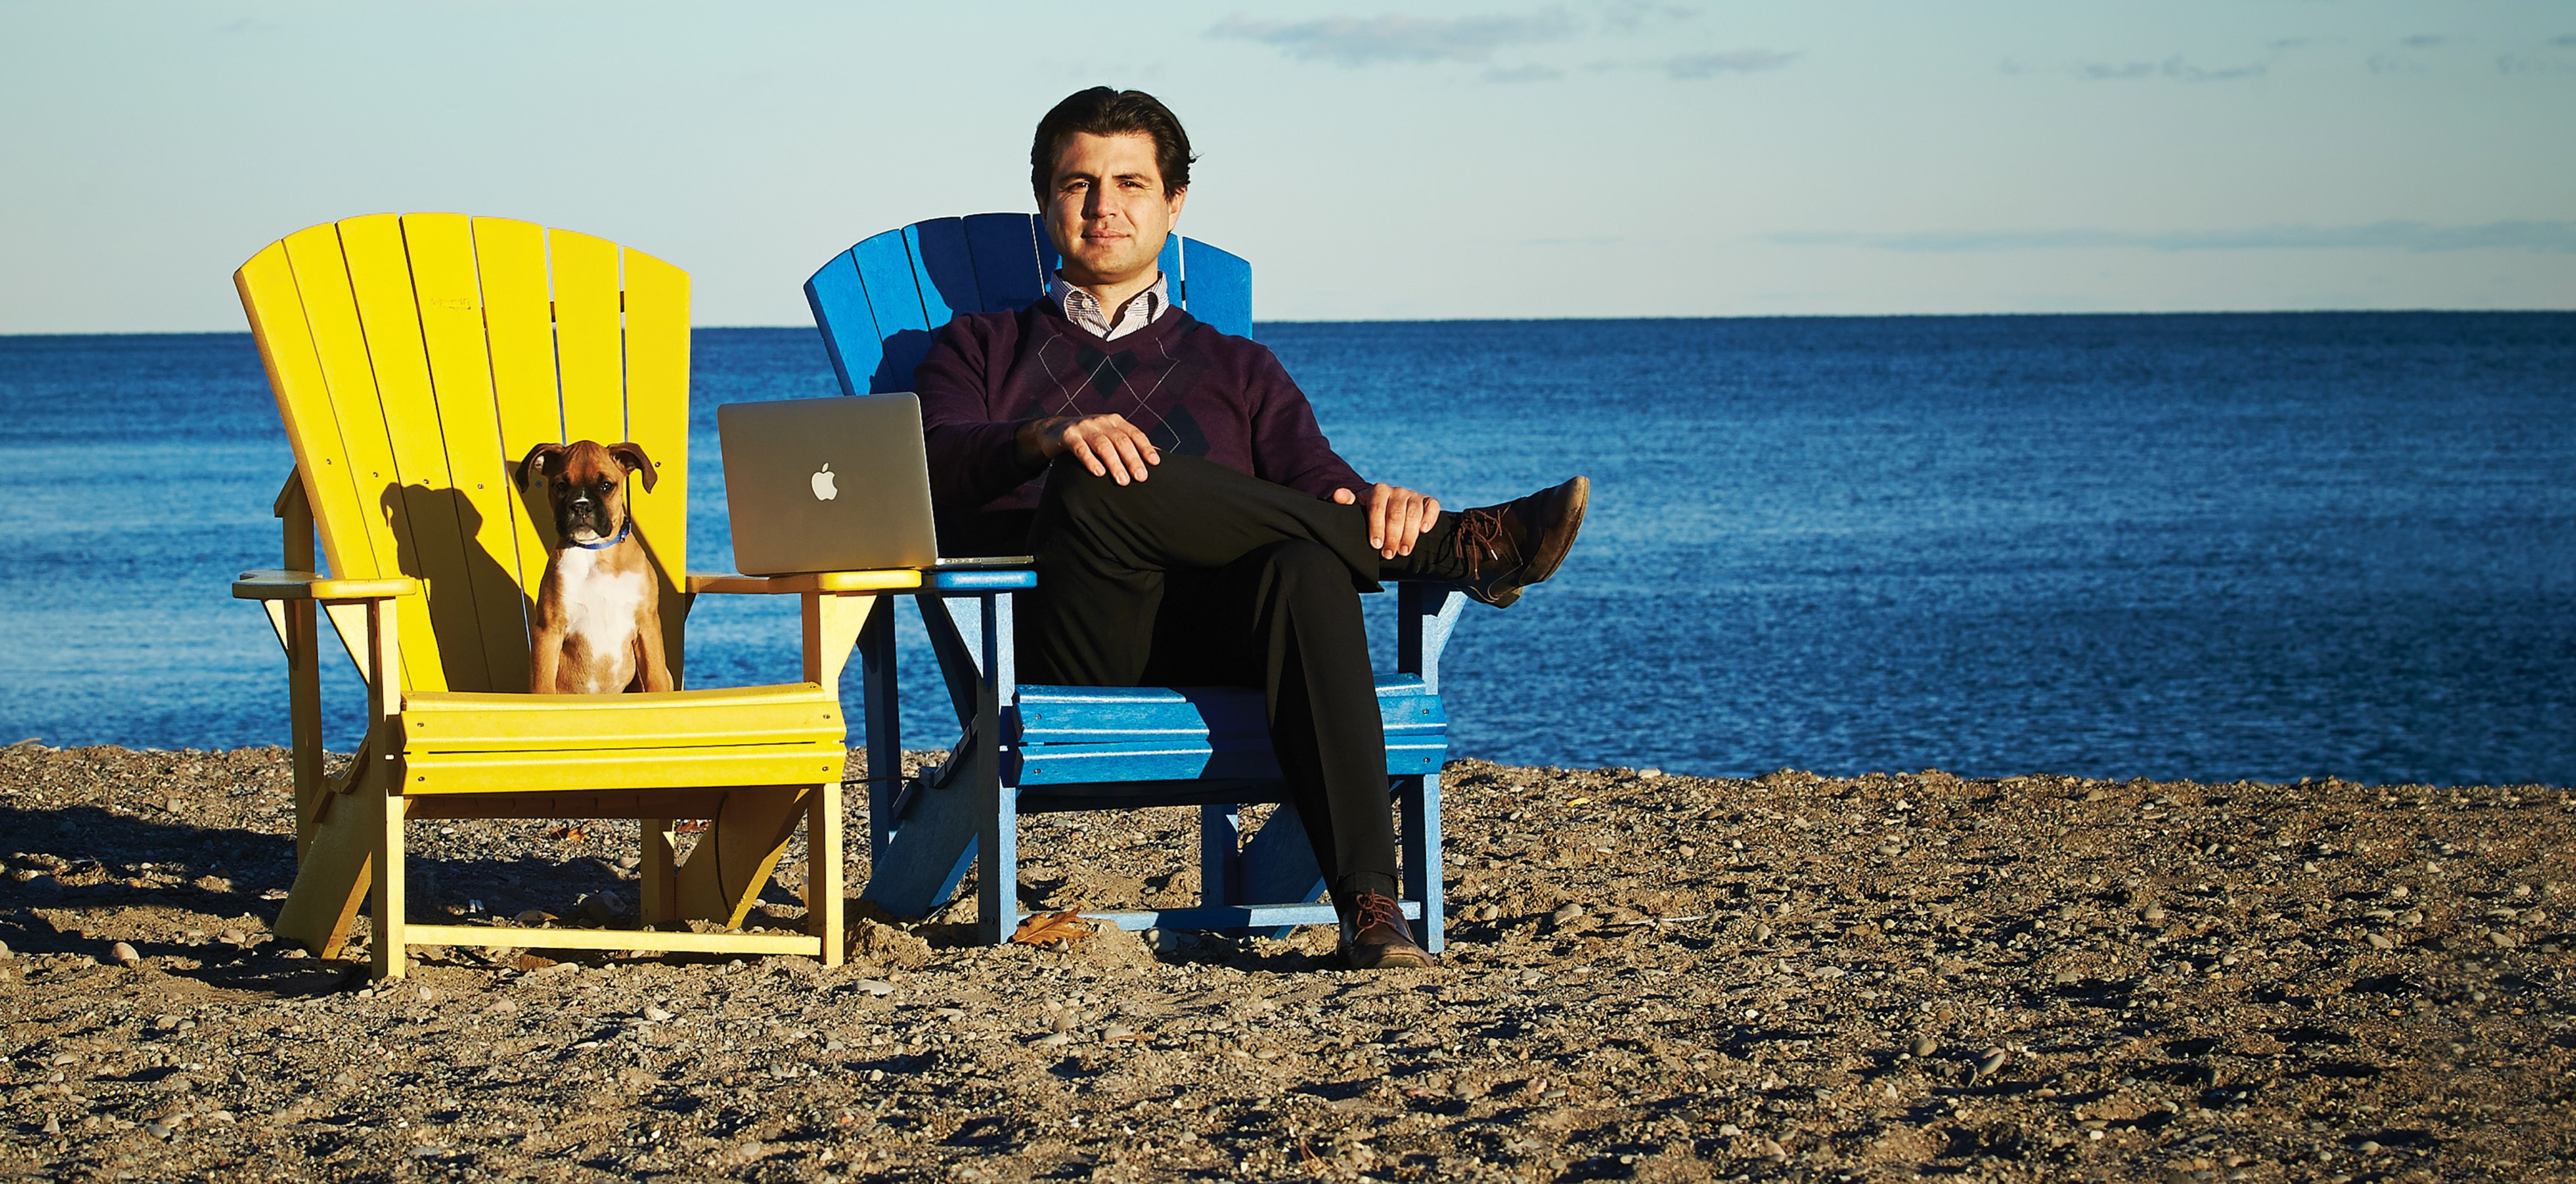 A man sits with his dog and his laptop on a chair on a beach.